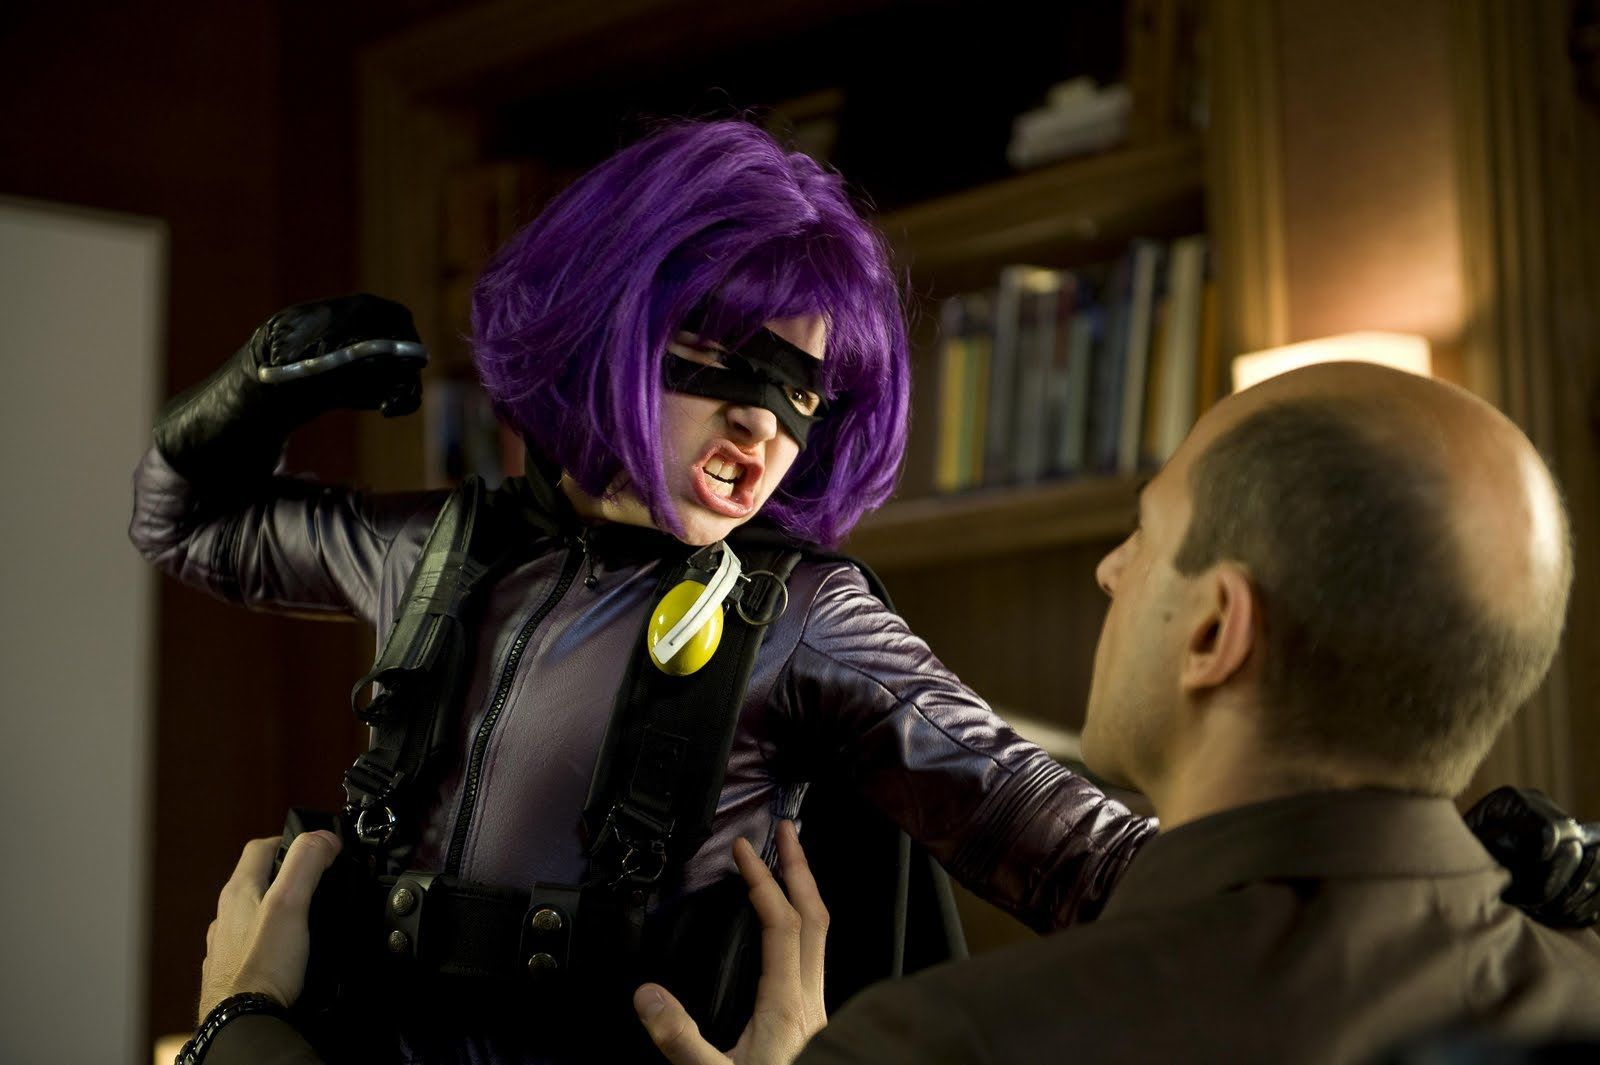 hit-girl-punching-kick-ass-3-and-a-hit-girl-prequel-on-the-way-jpeg-261597.jpg